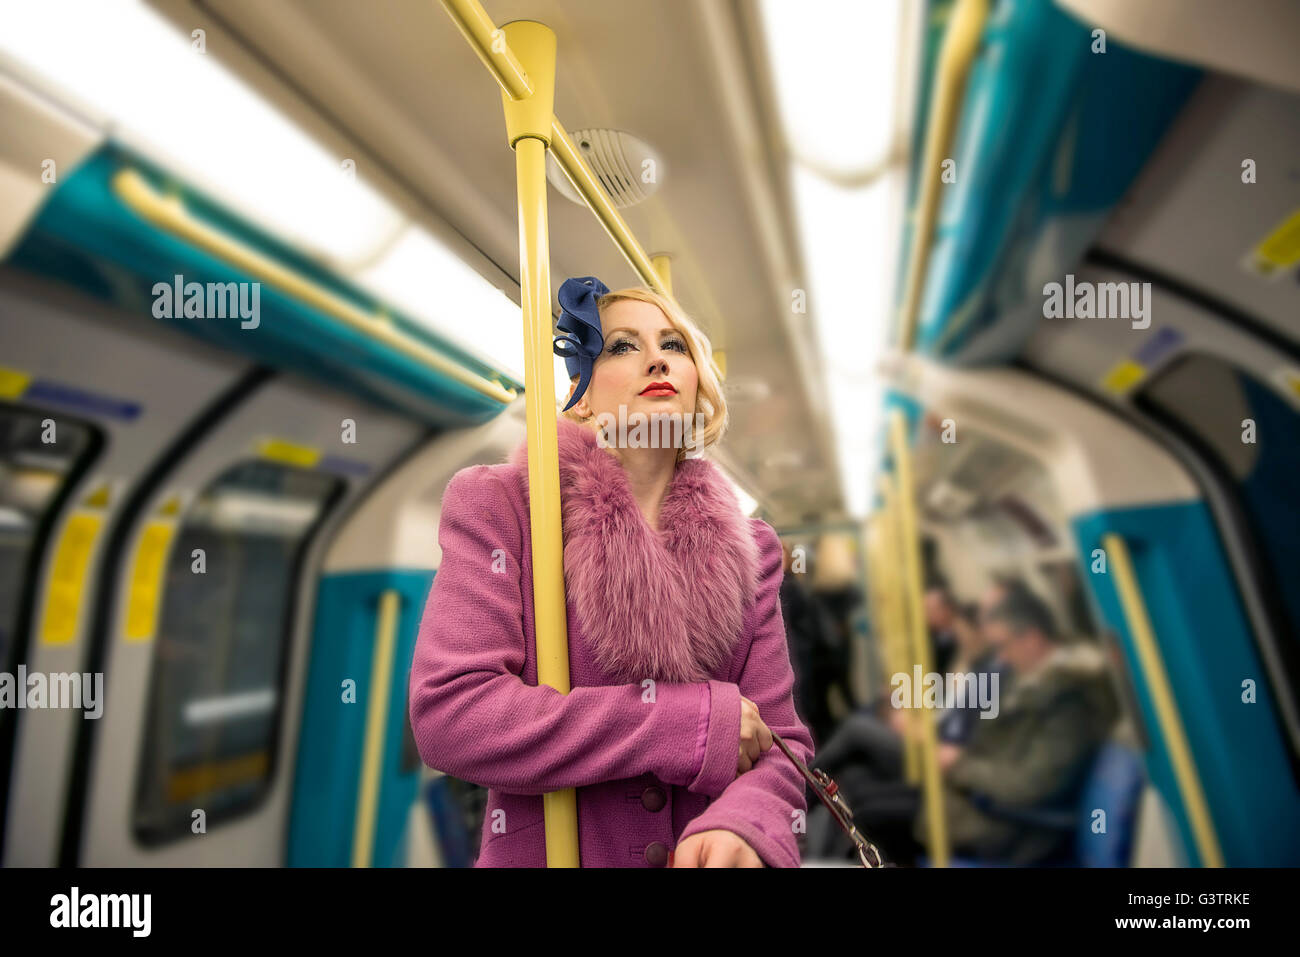 A stylish young woman dressed in 1930s style clothing travelling on a tube train. - Stock Image